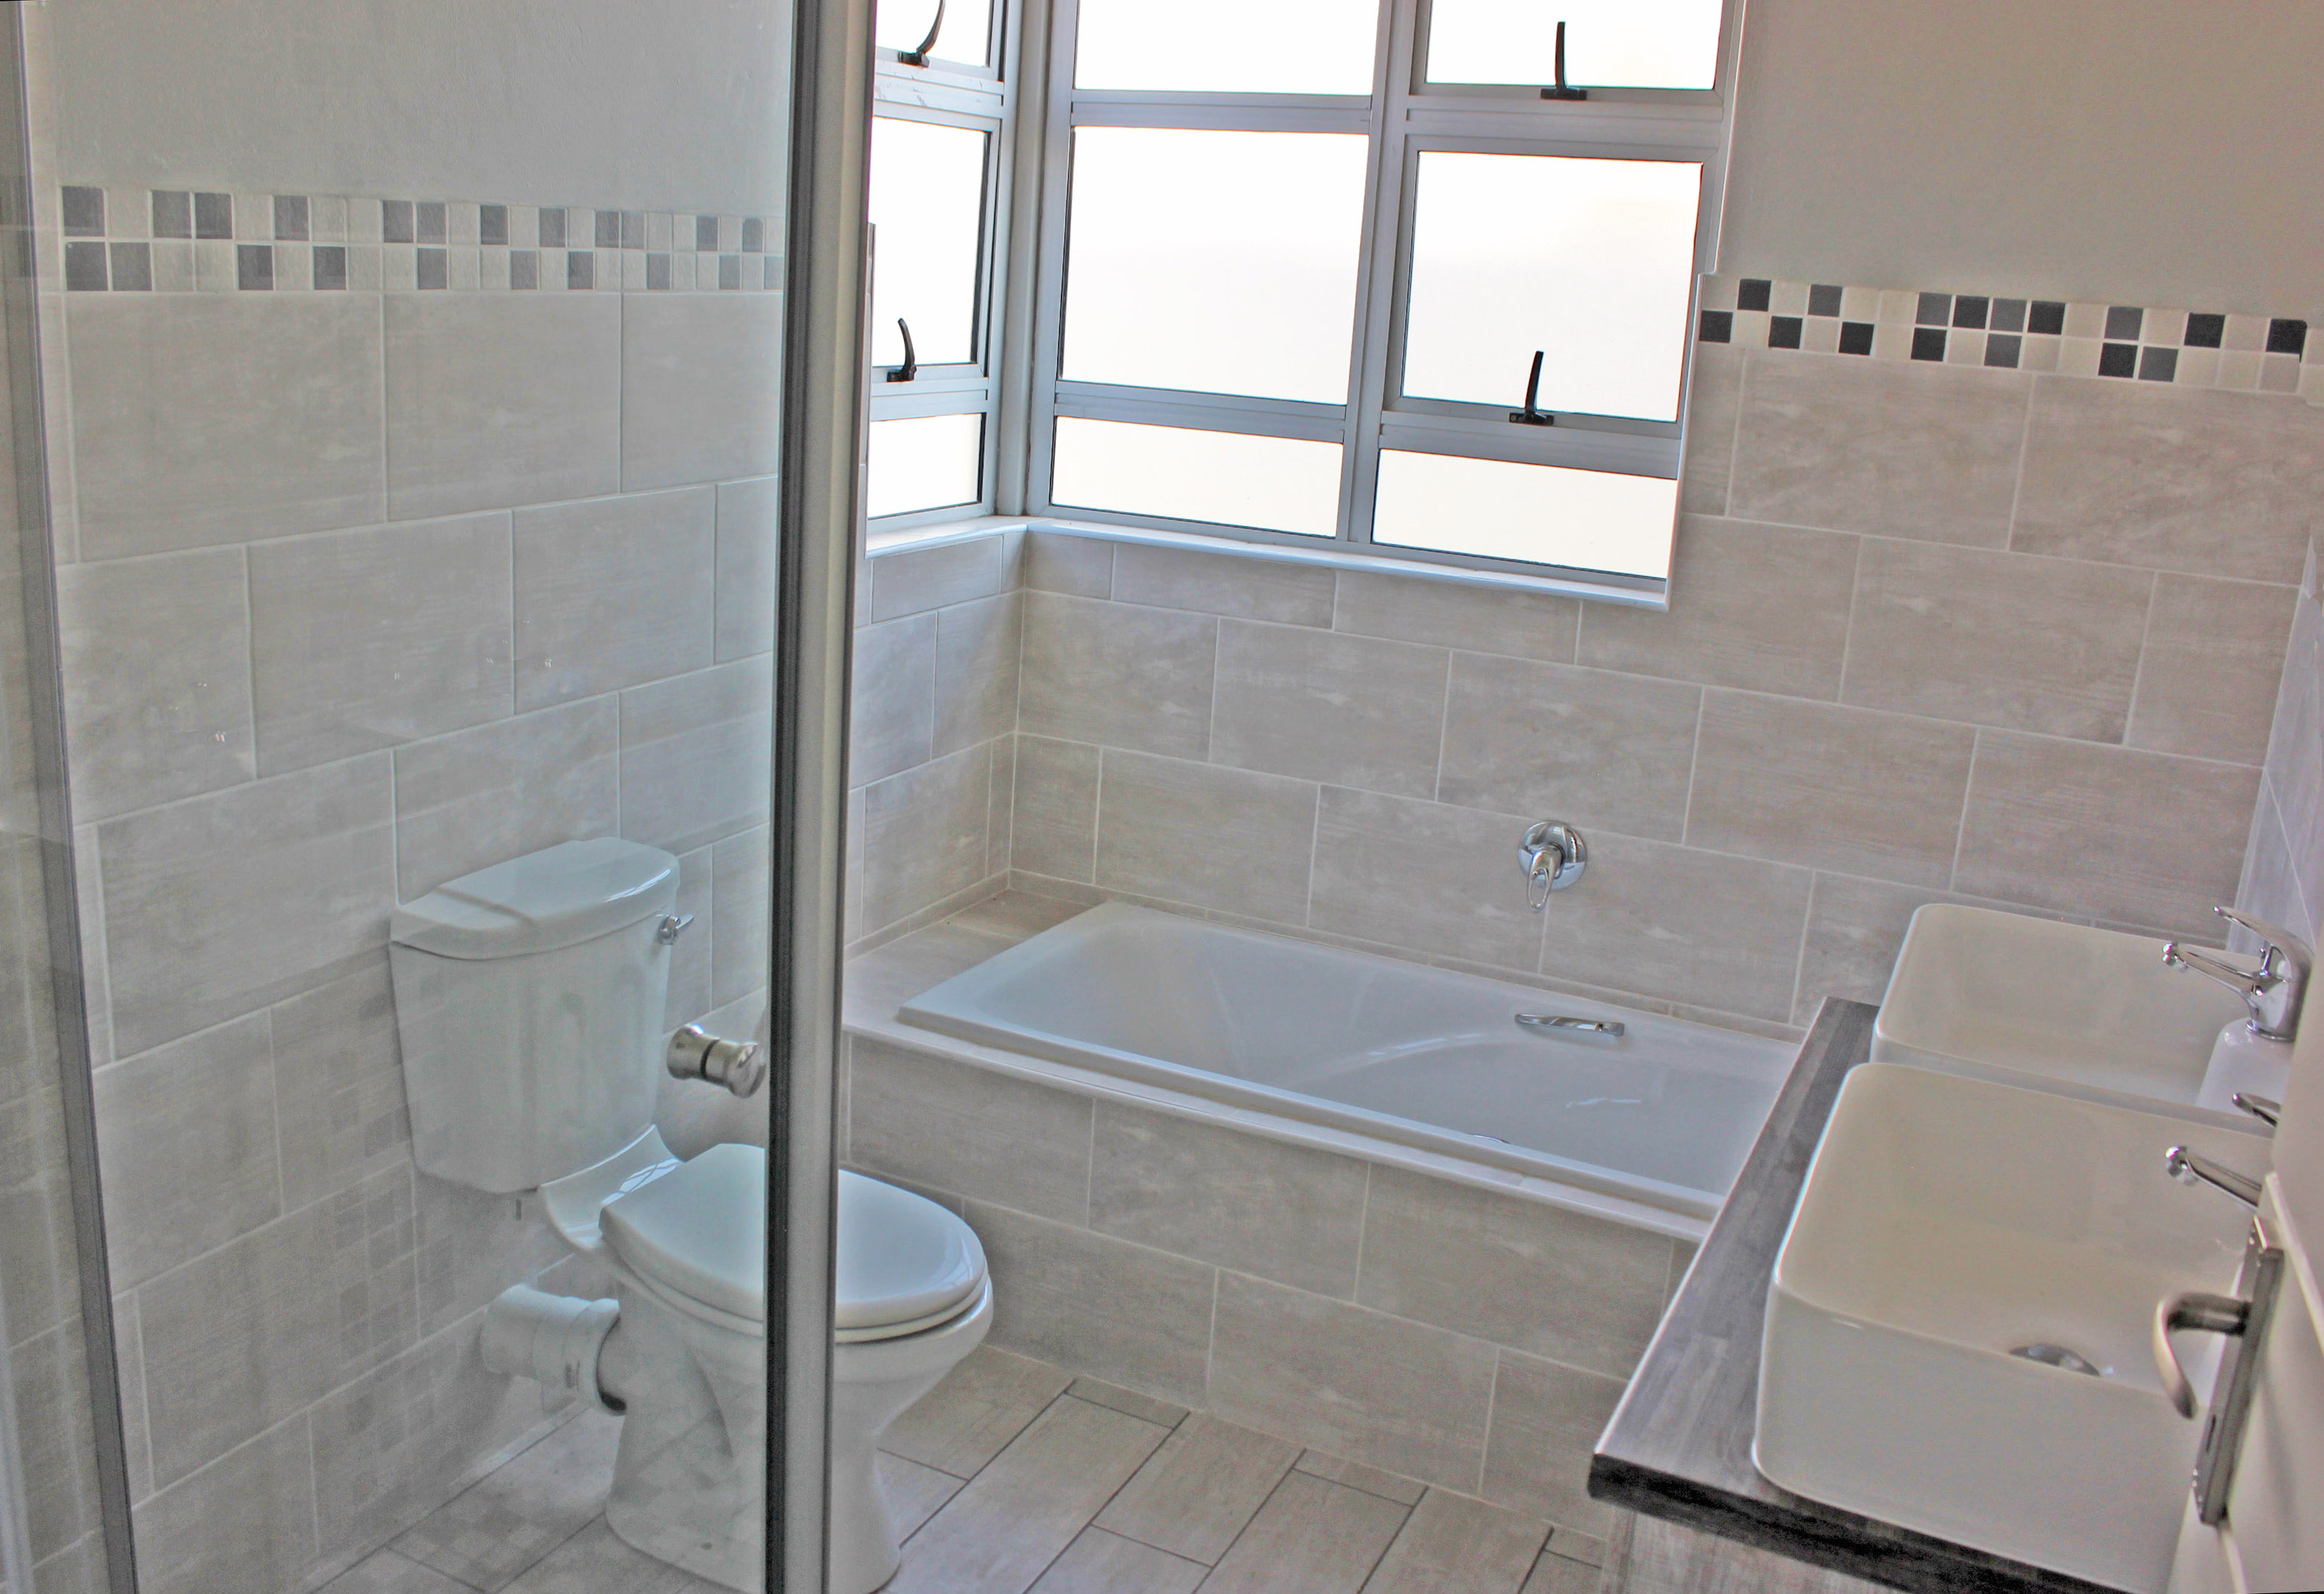 3 Bedroom Townhouse for sale in North Riding ENT0075308 : photo#13